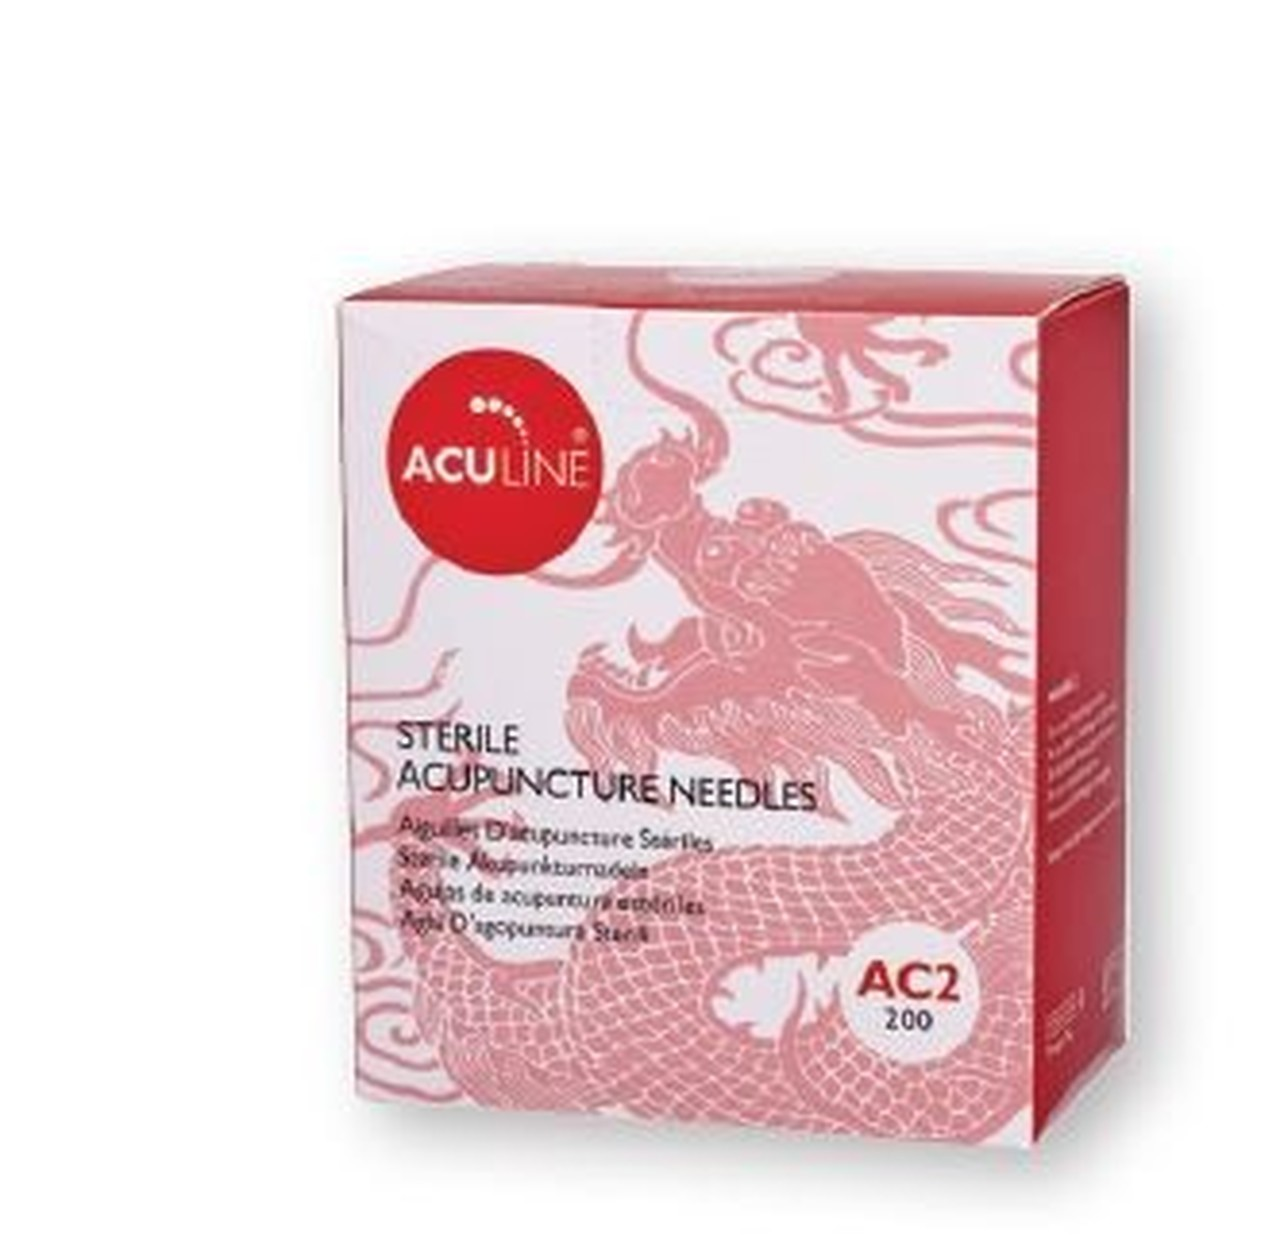 .25x40mm - Aculine Copper Handle Acupuncture Needles